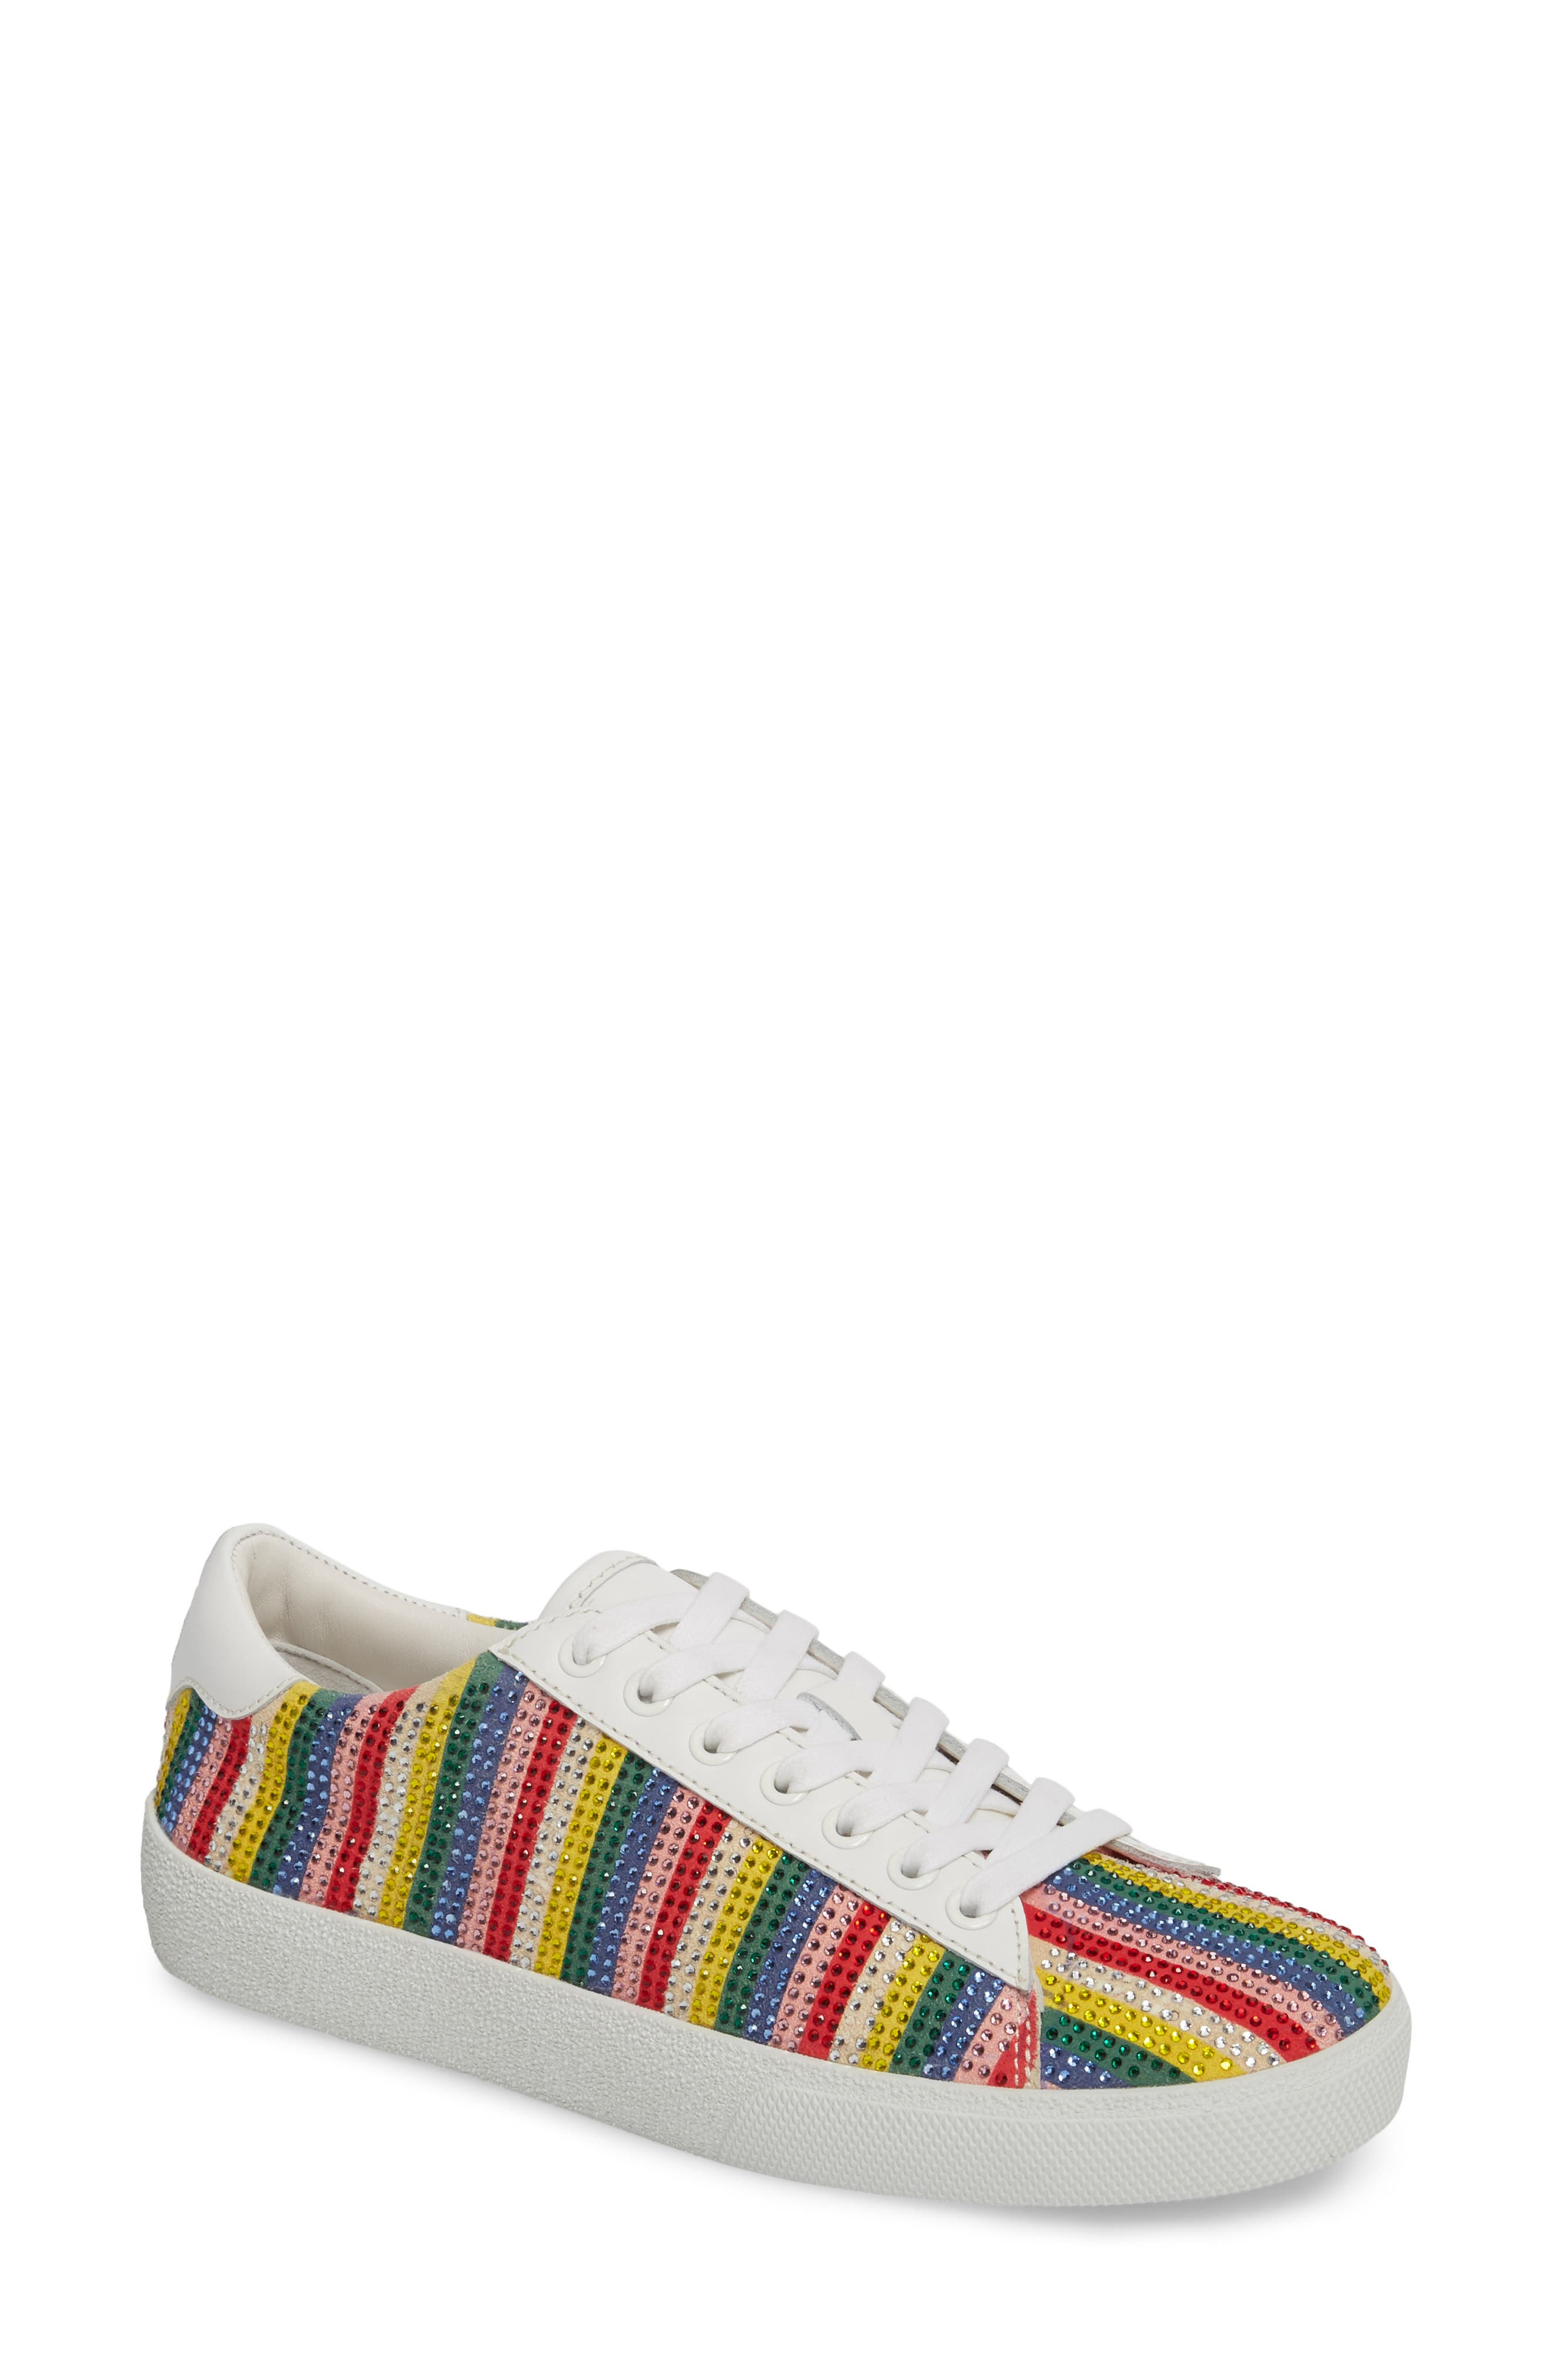 Cassidy Crystal Embellished Sneaker,                         Main,                         color, Multi